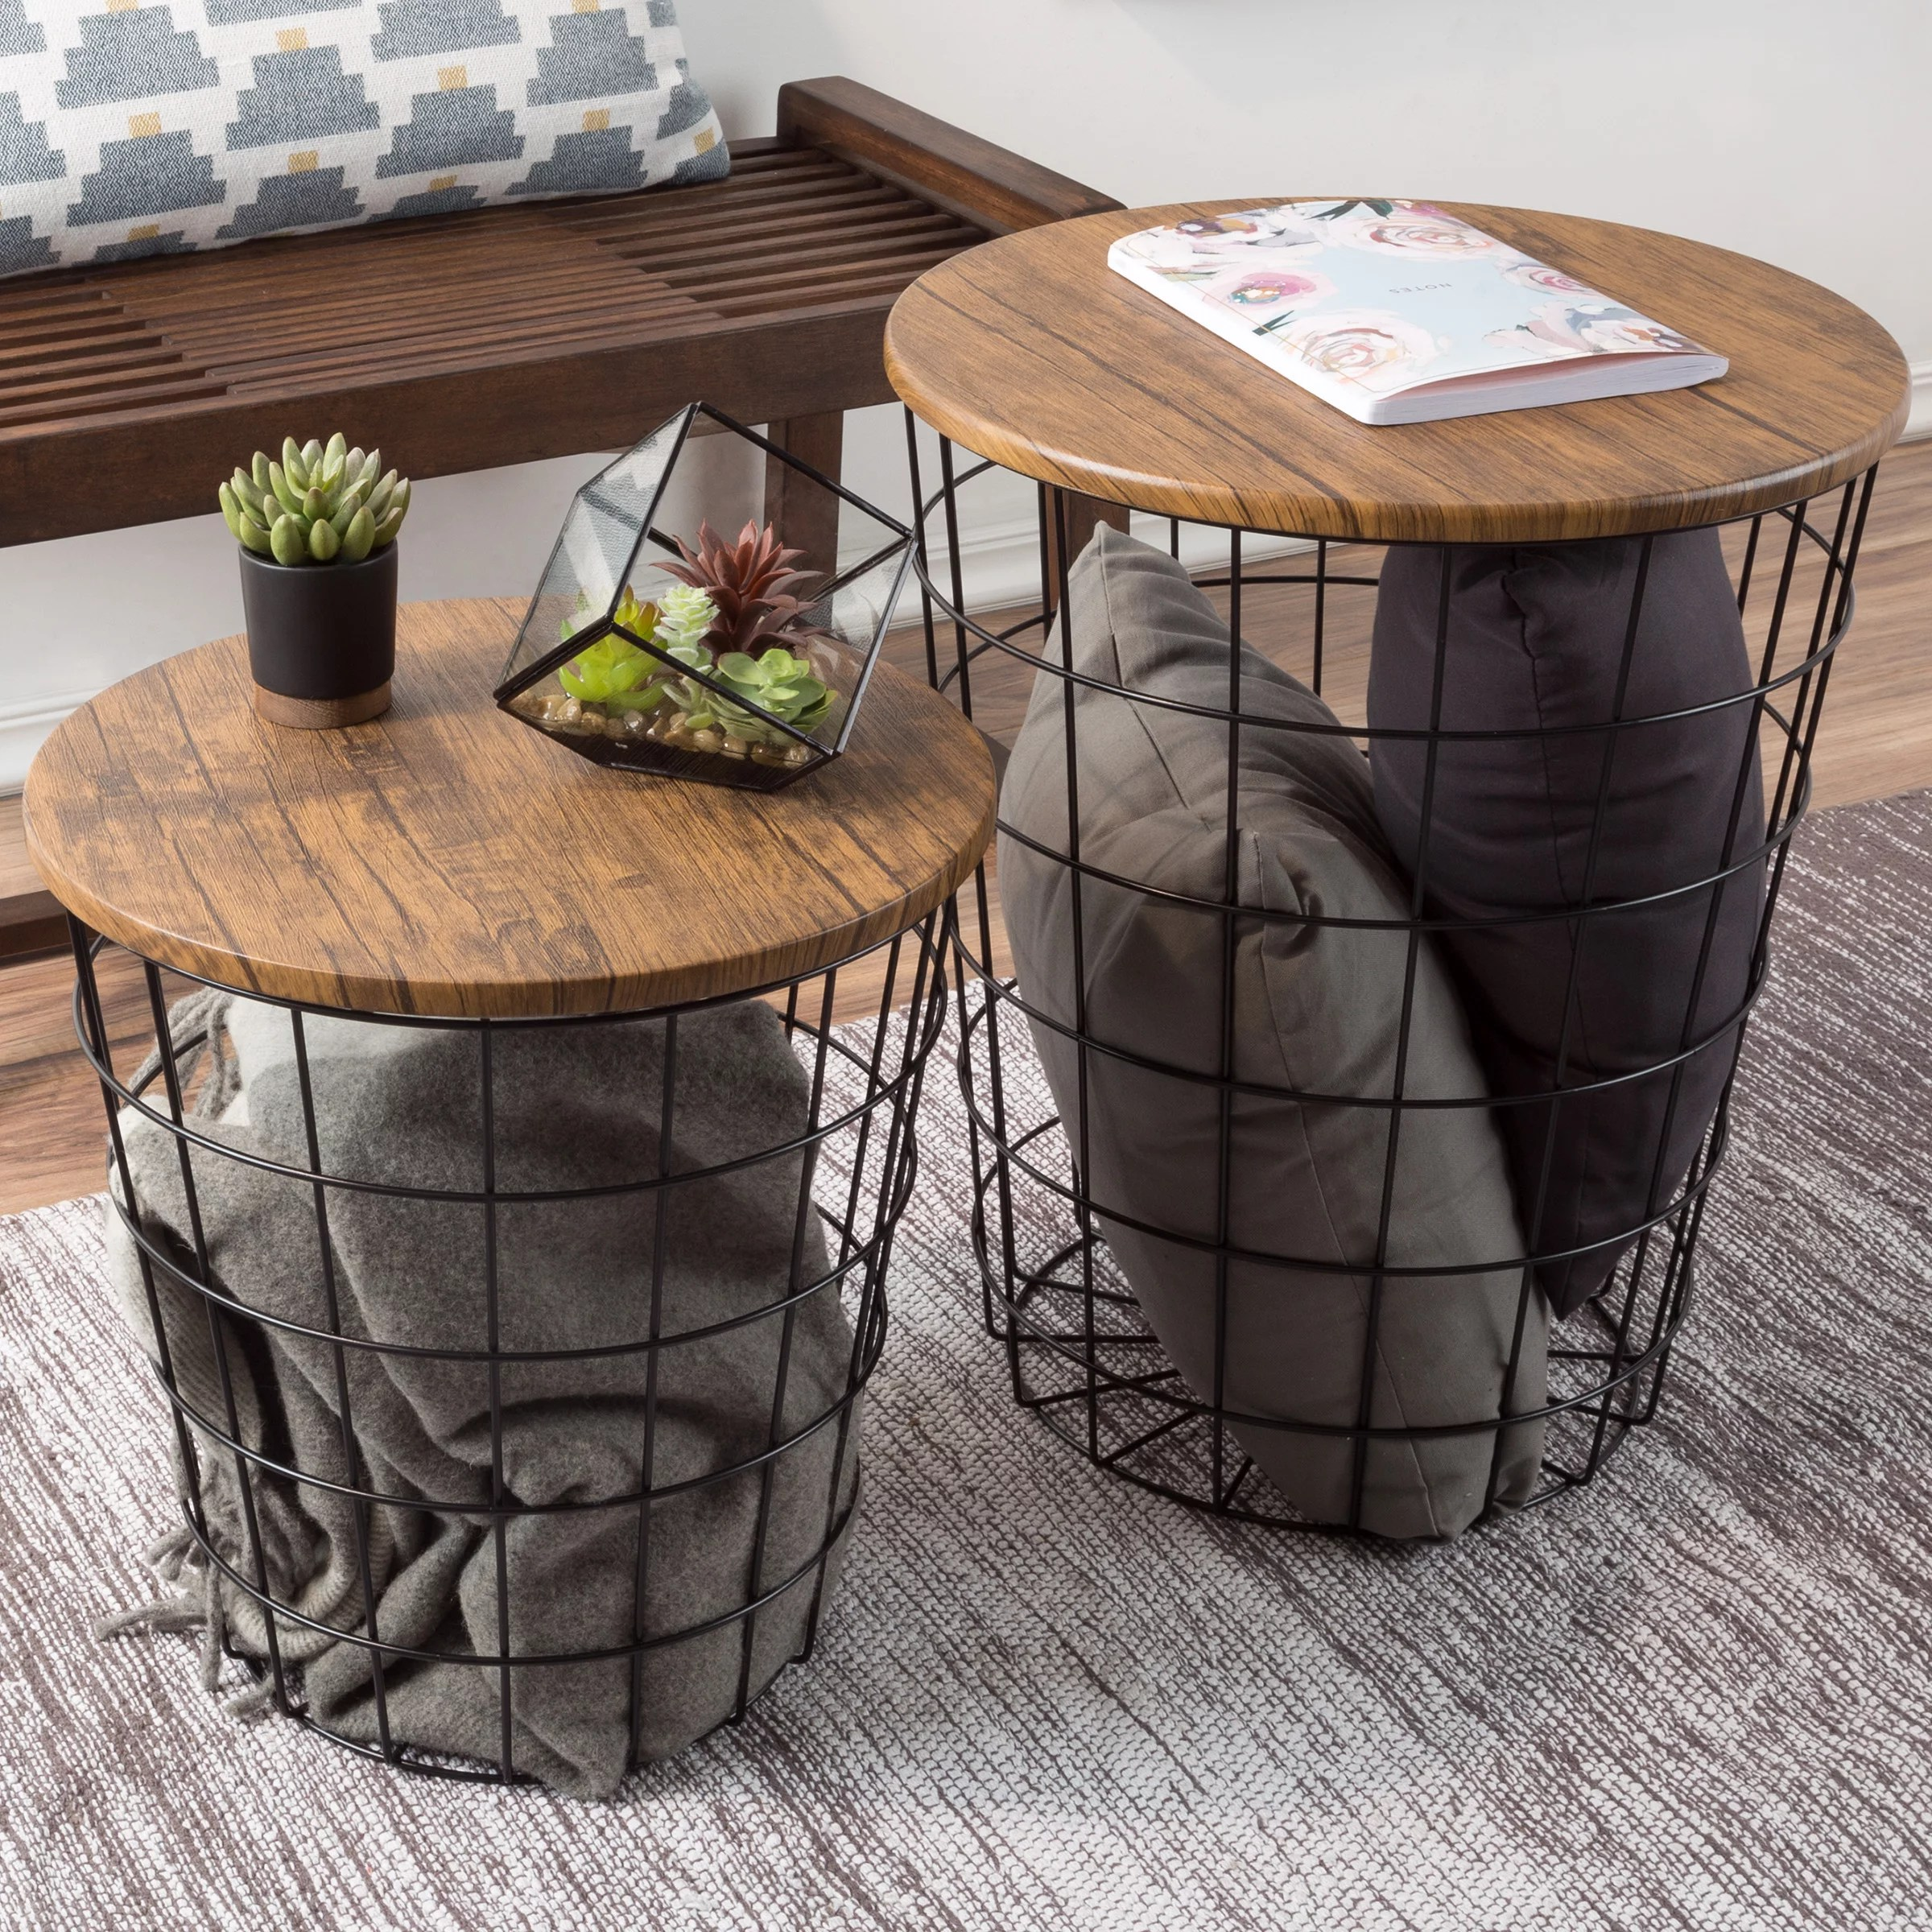 nesting end tables with storage set of 2 convertible round metal basket veneer wood top accent side tables for home and office by lavish home